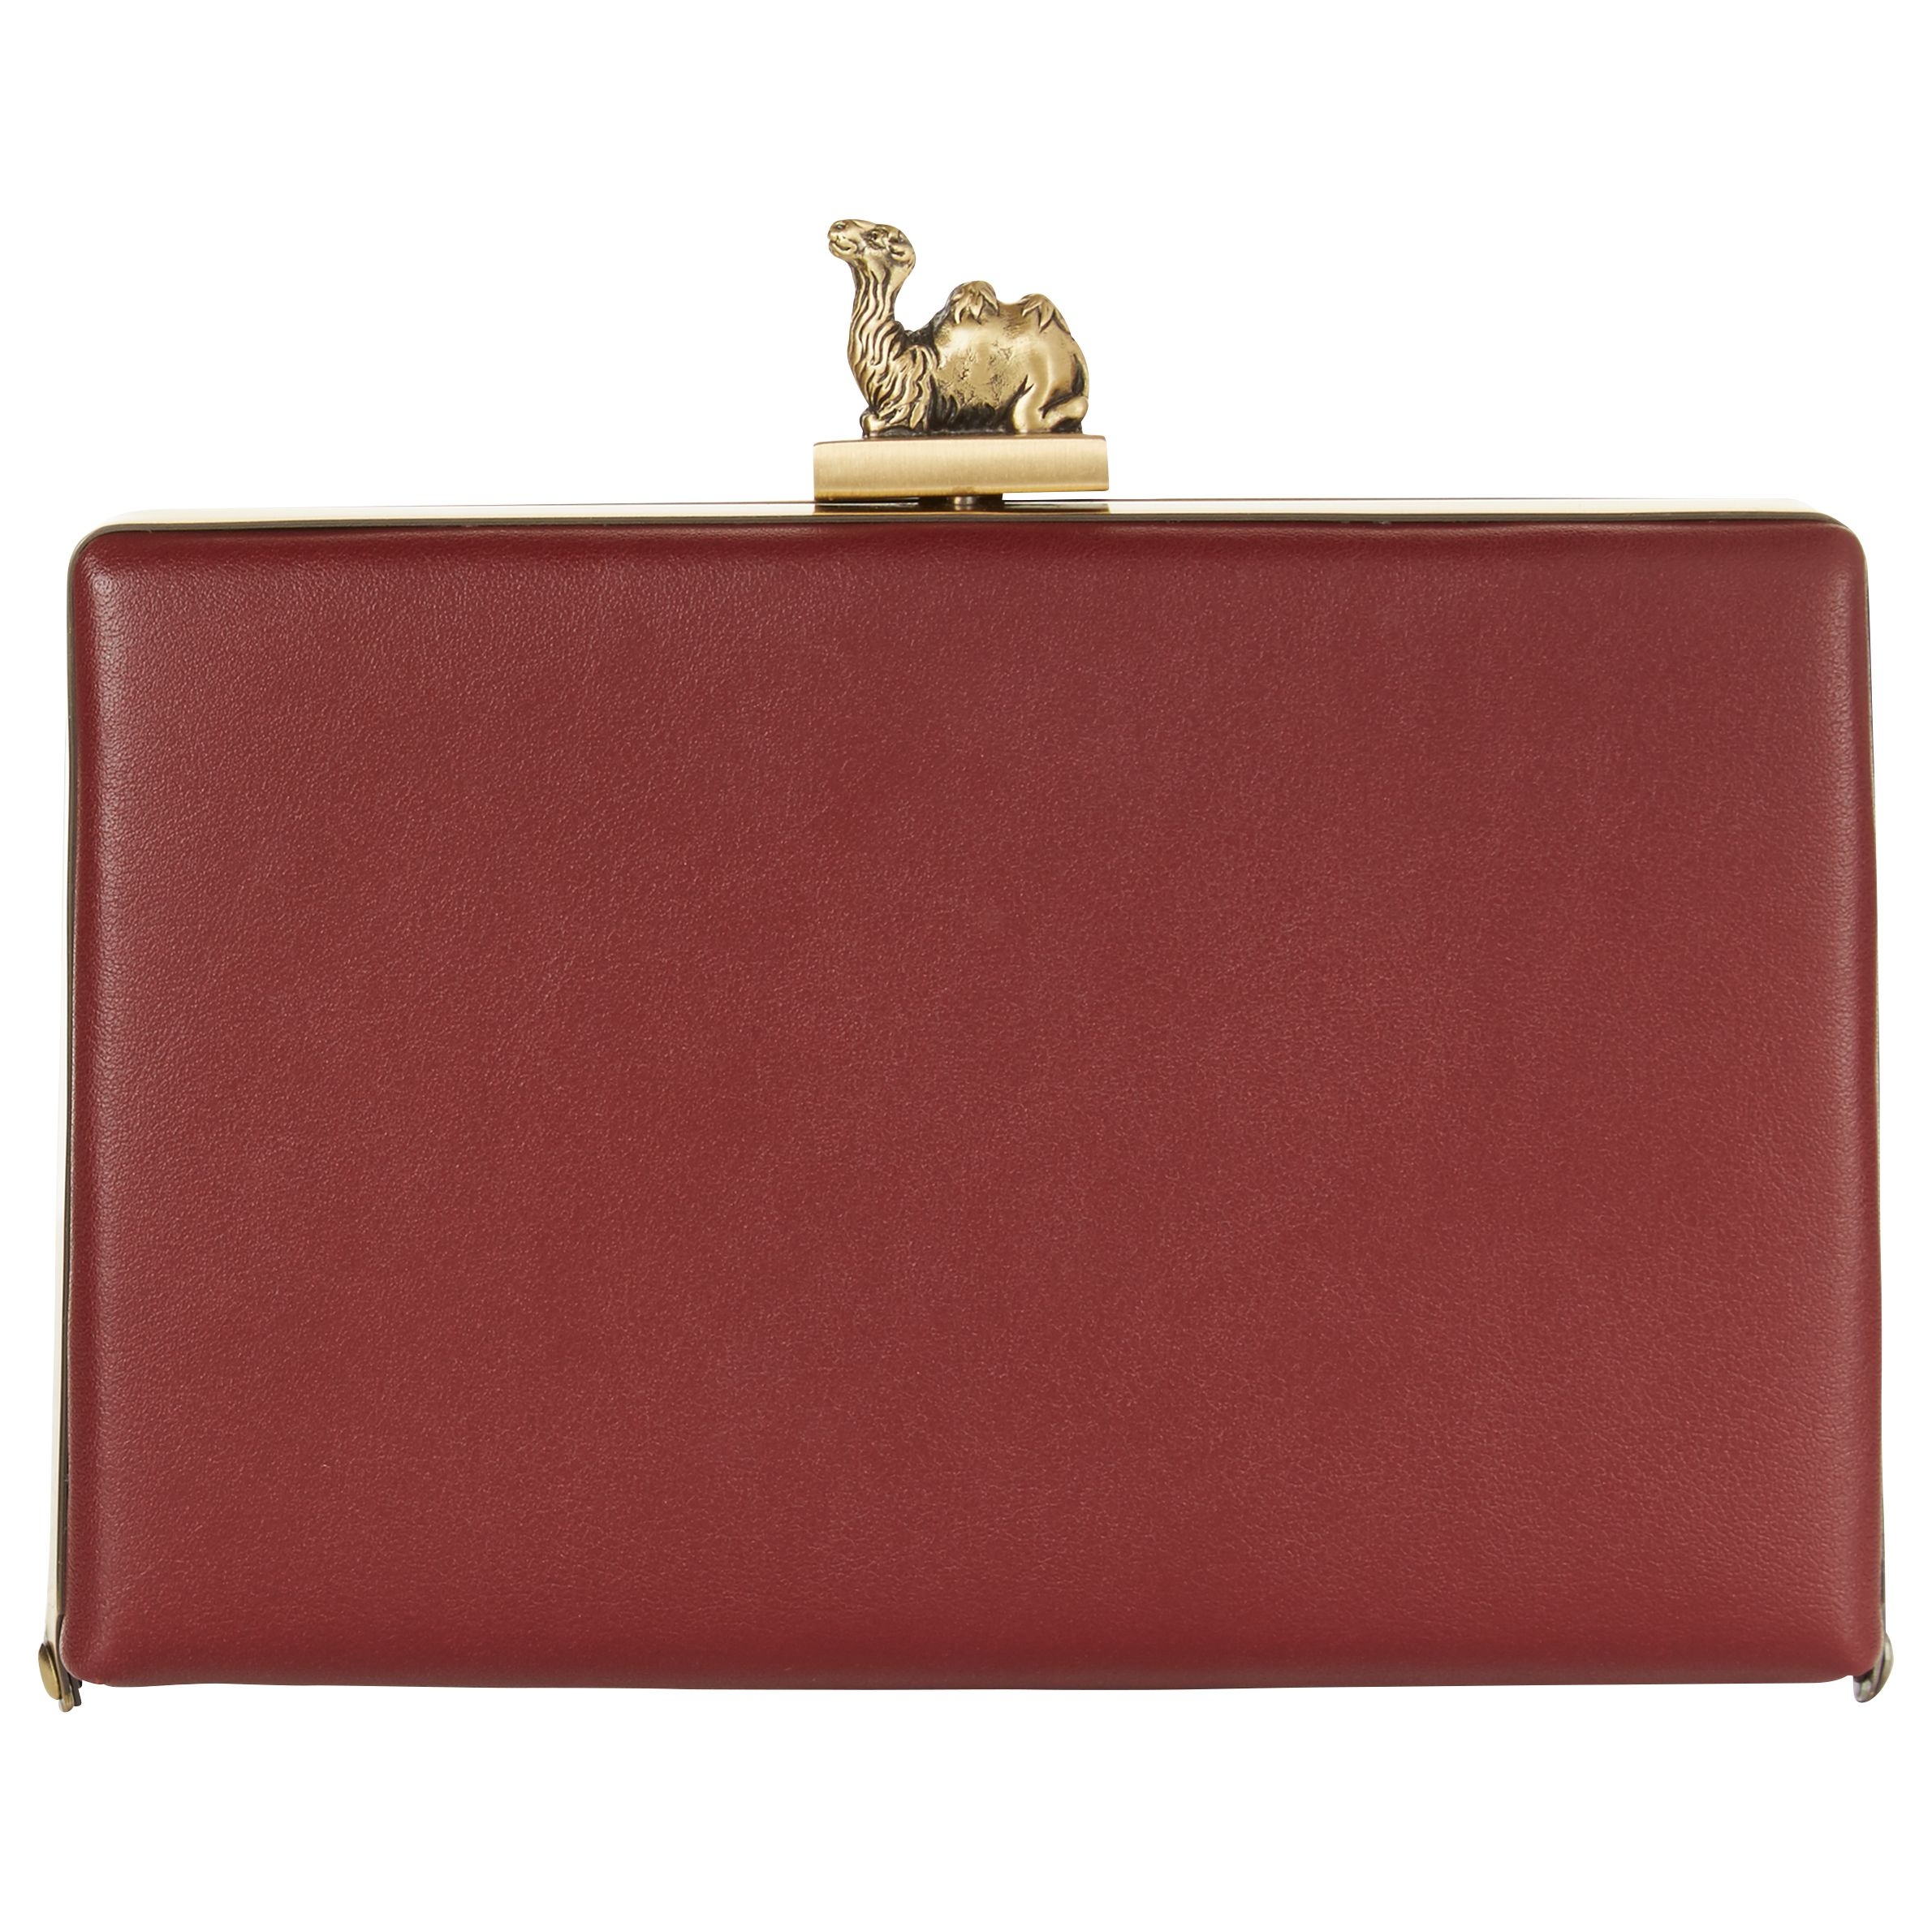 1f6be8b981b804 Jaeger Leather Camel Clasp Box Clutch Bag at John Lewis   Partners